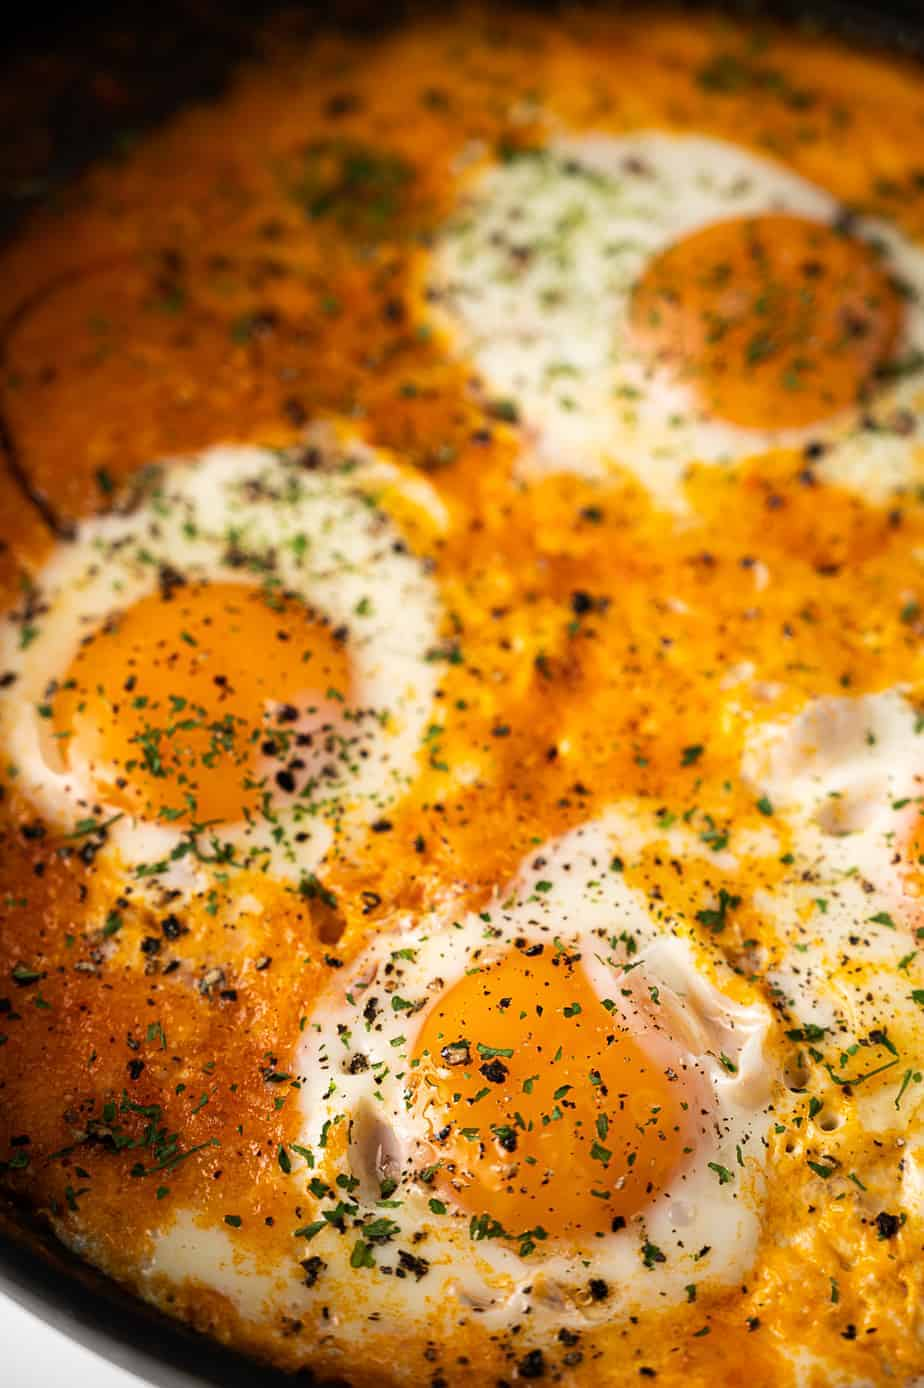 Eggs with parsley in a shakshuka